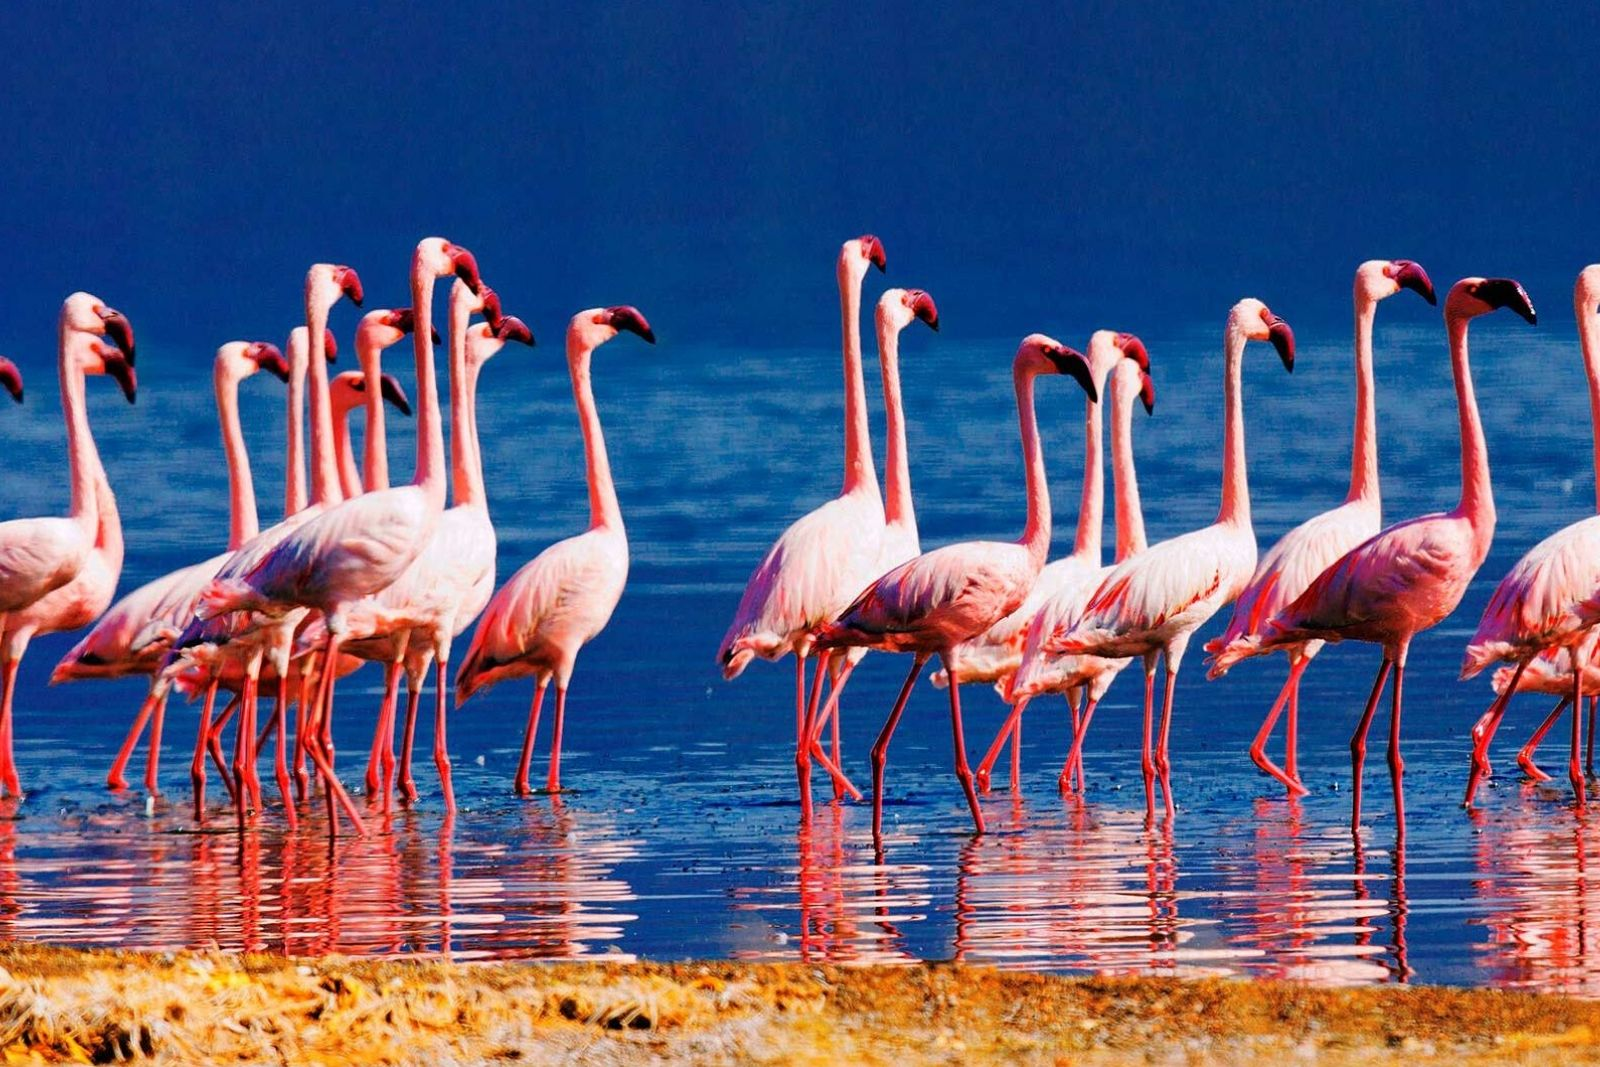 Flamingoes in lake bogoria national reserve